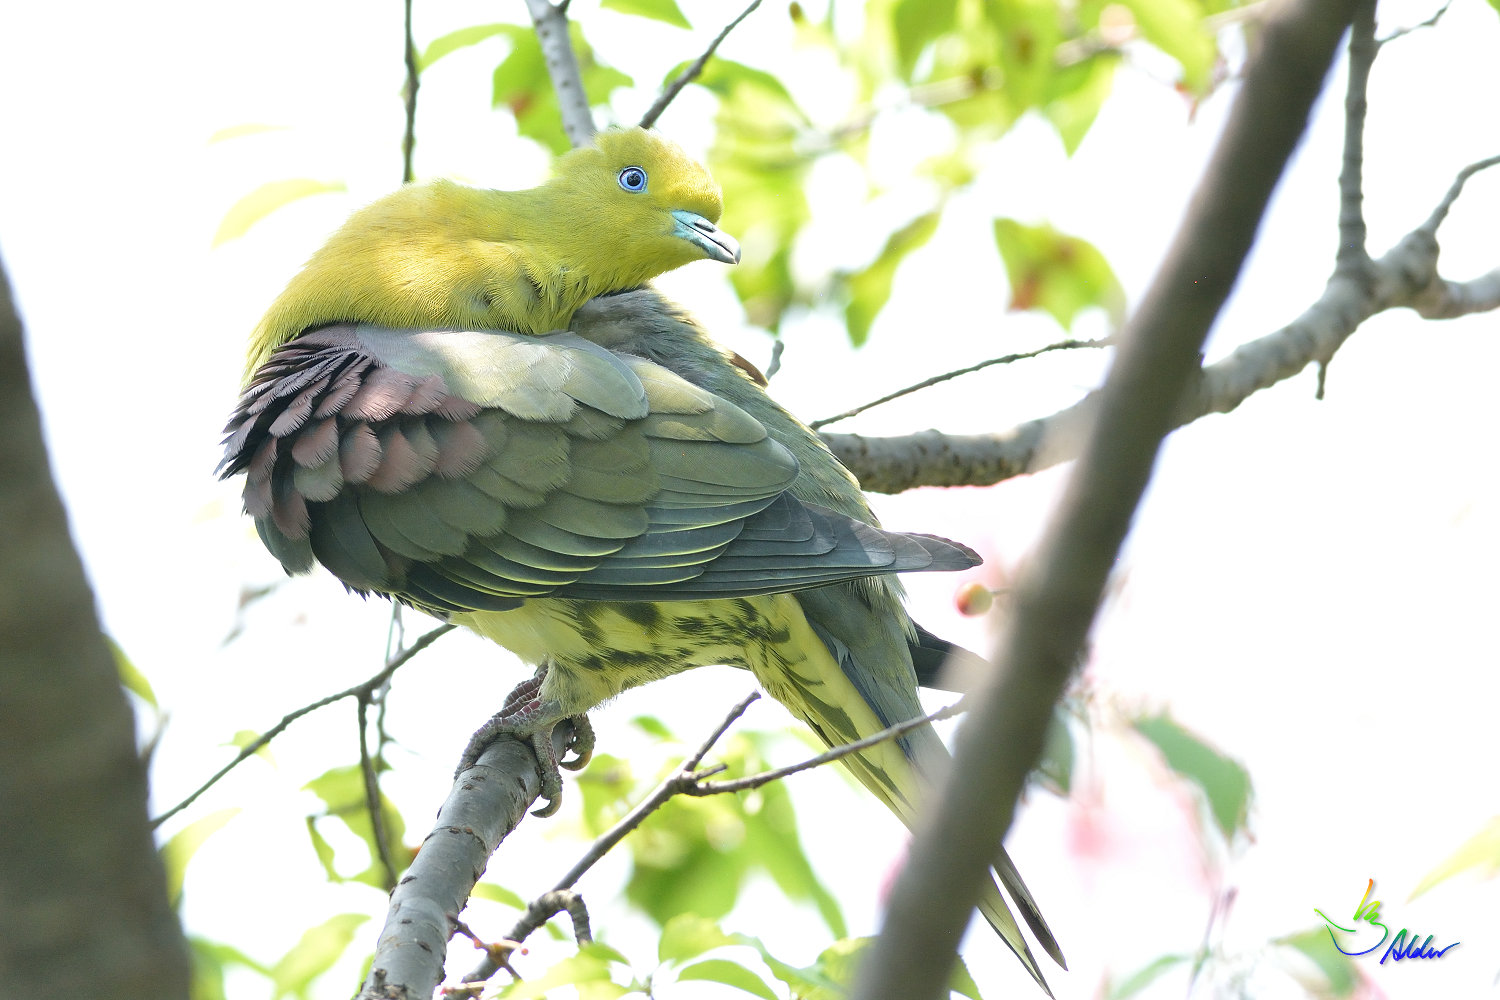 White-bellied_Green_Pigeon_5774